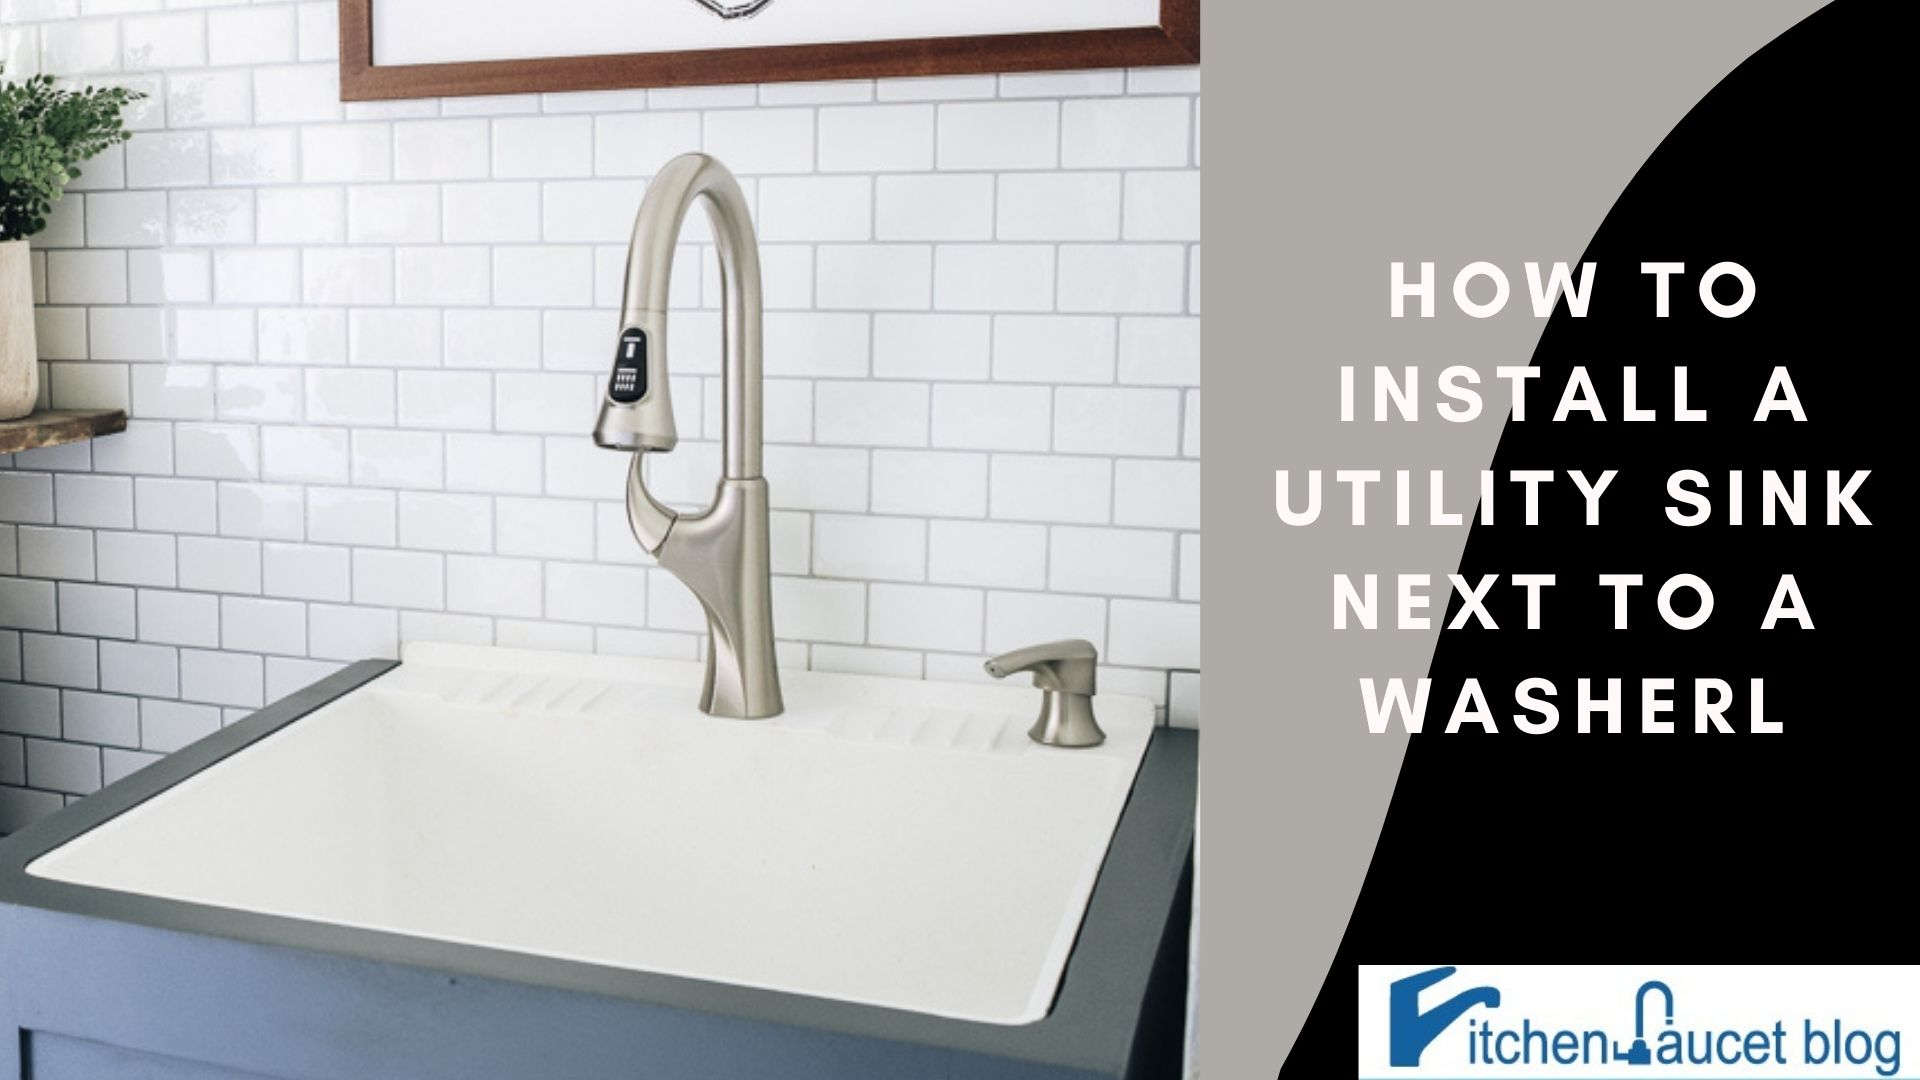 How to install a utility sink next to a washer